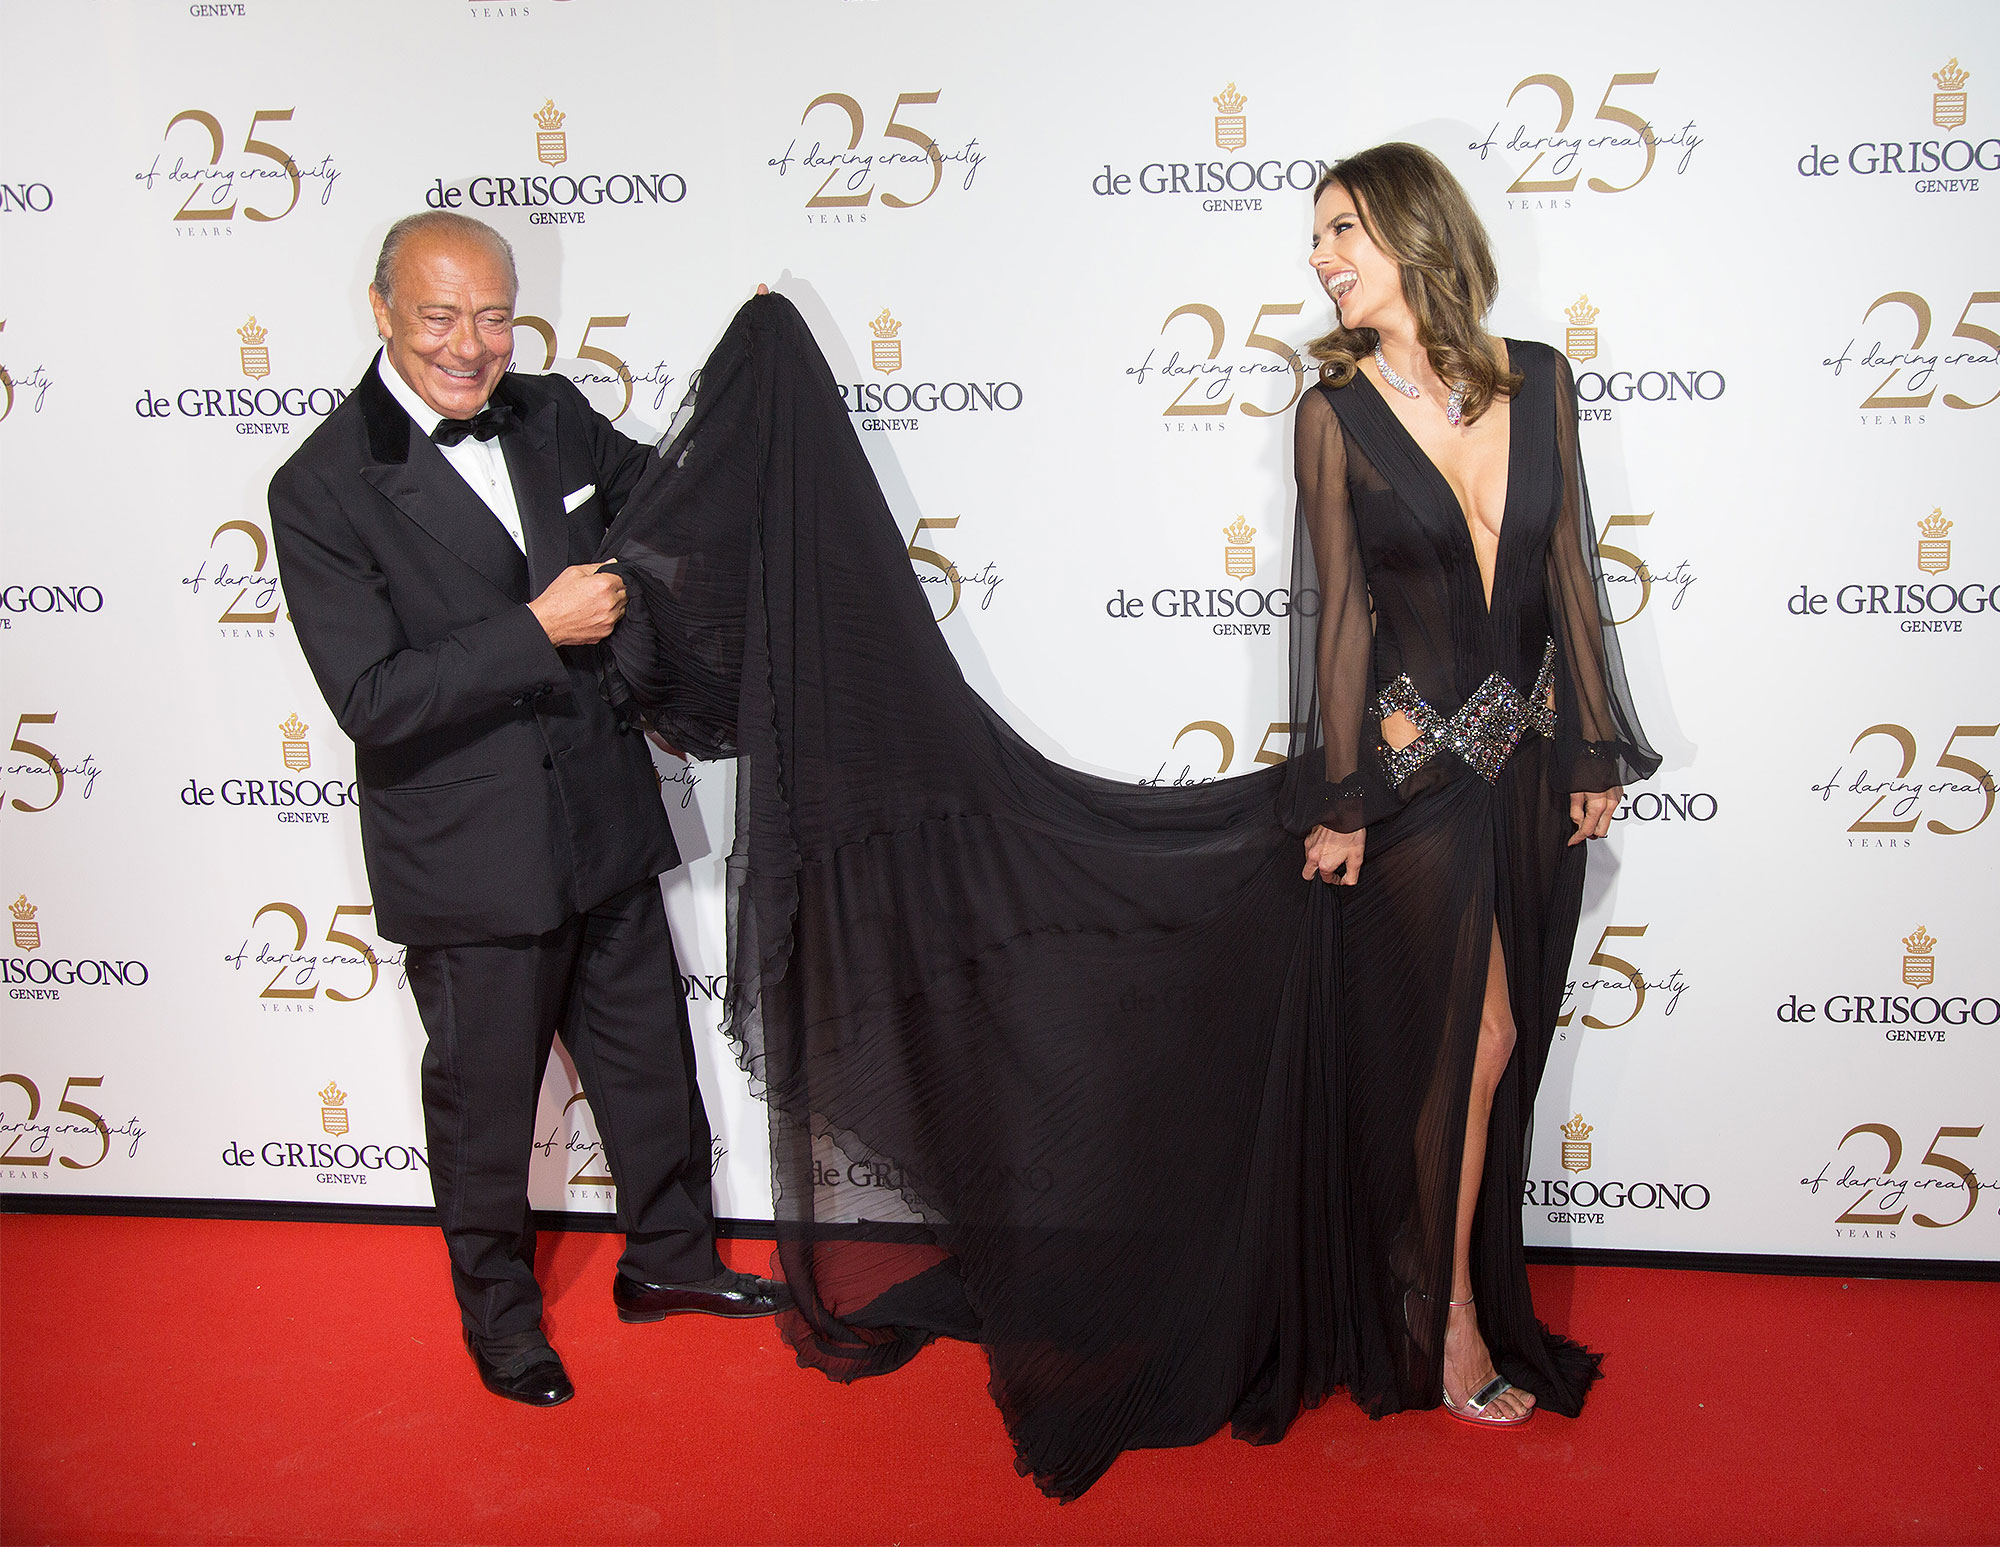 DeGrisogono Party During the 71st Cannes Film Festival